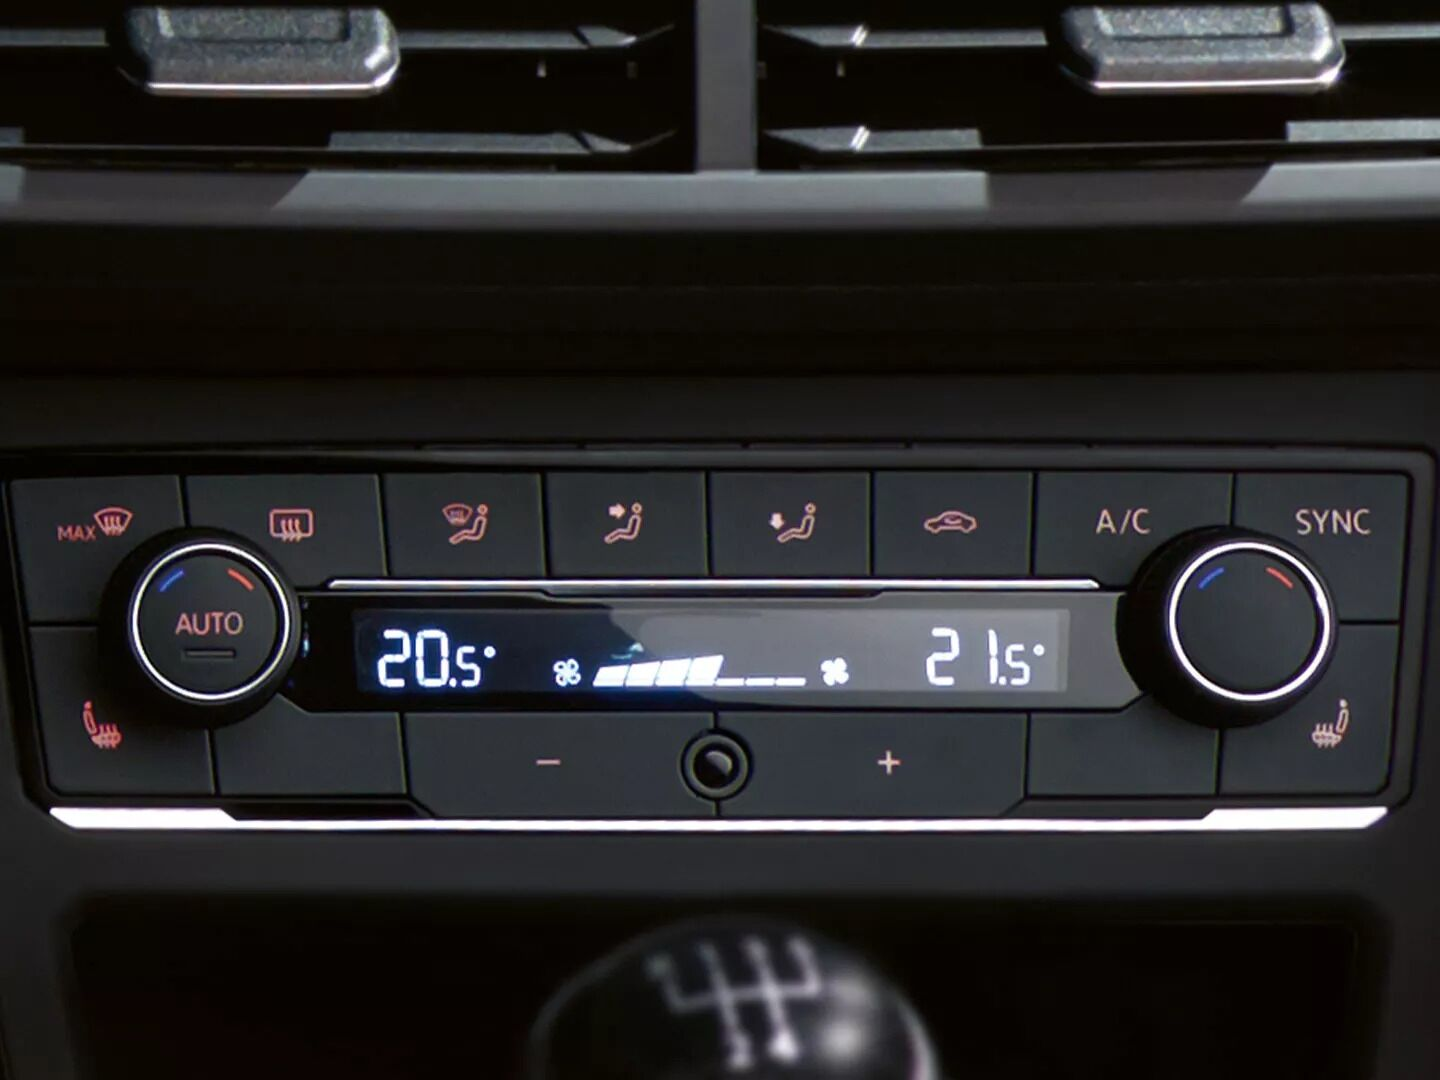 polo climatic air conditioning